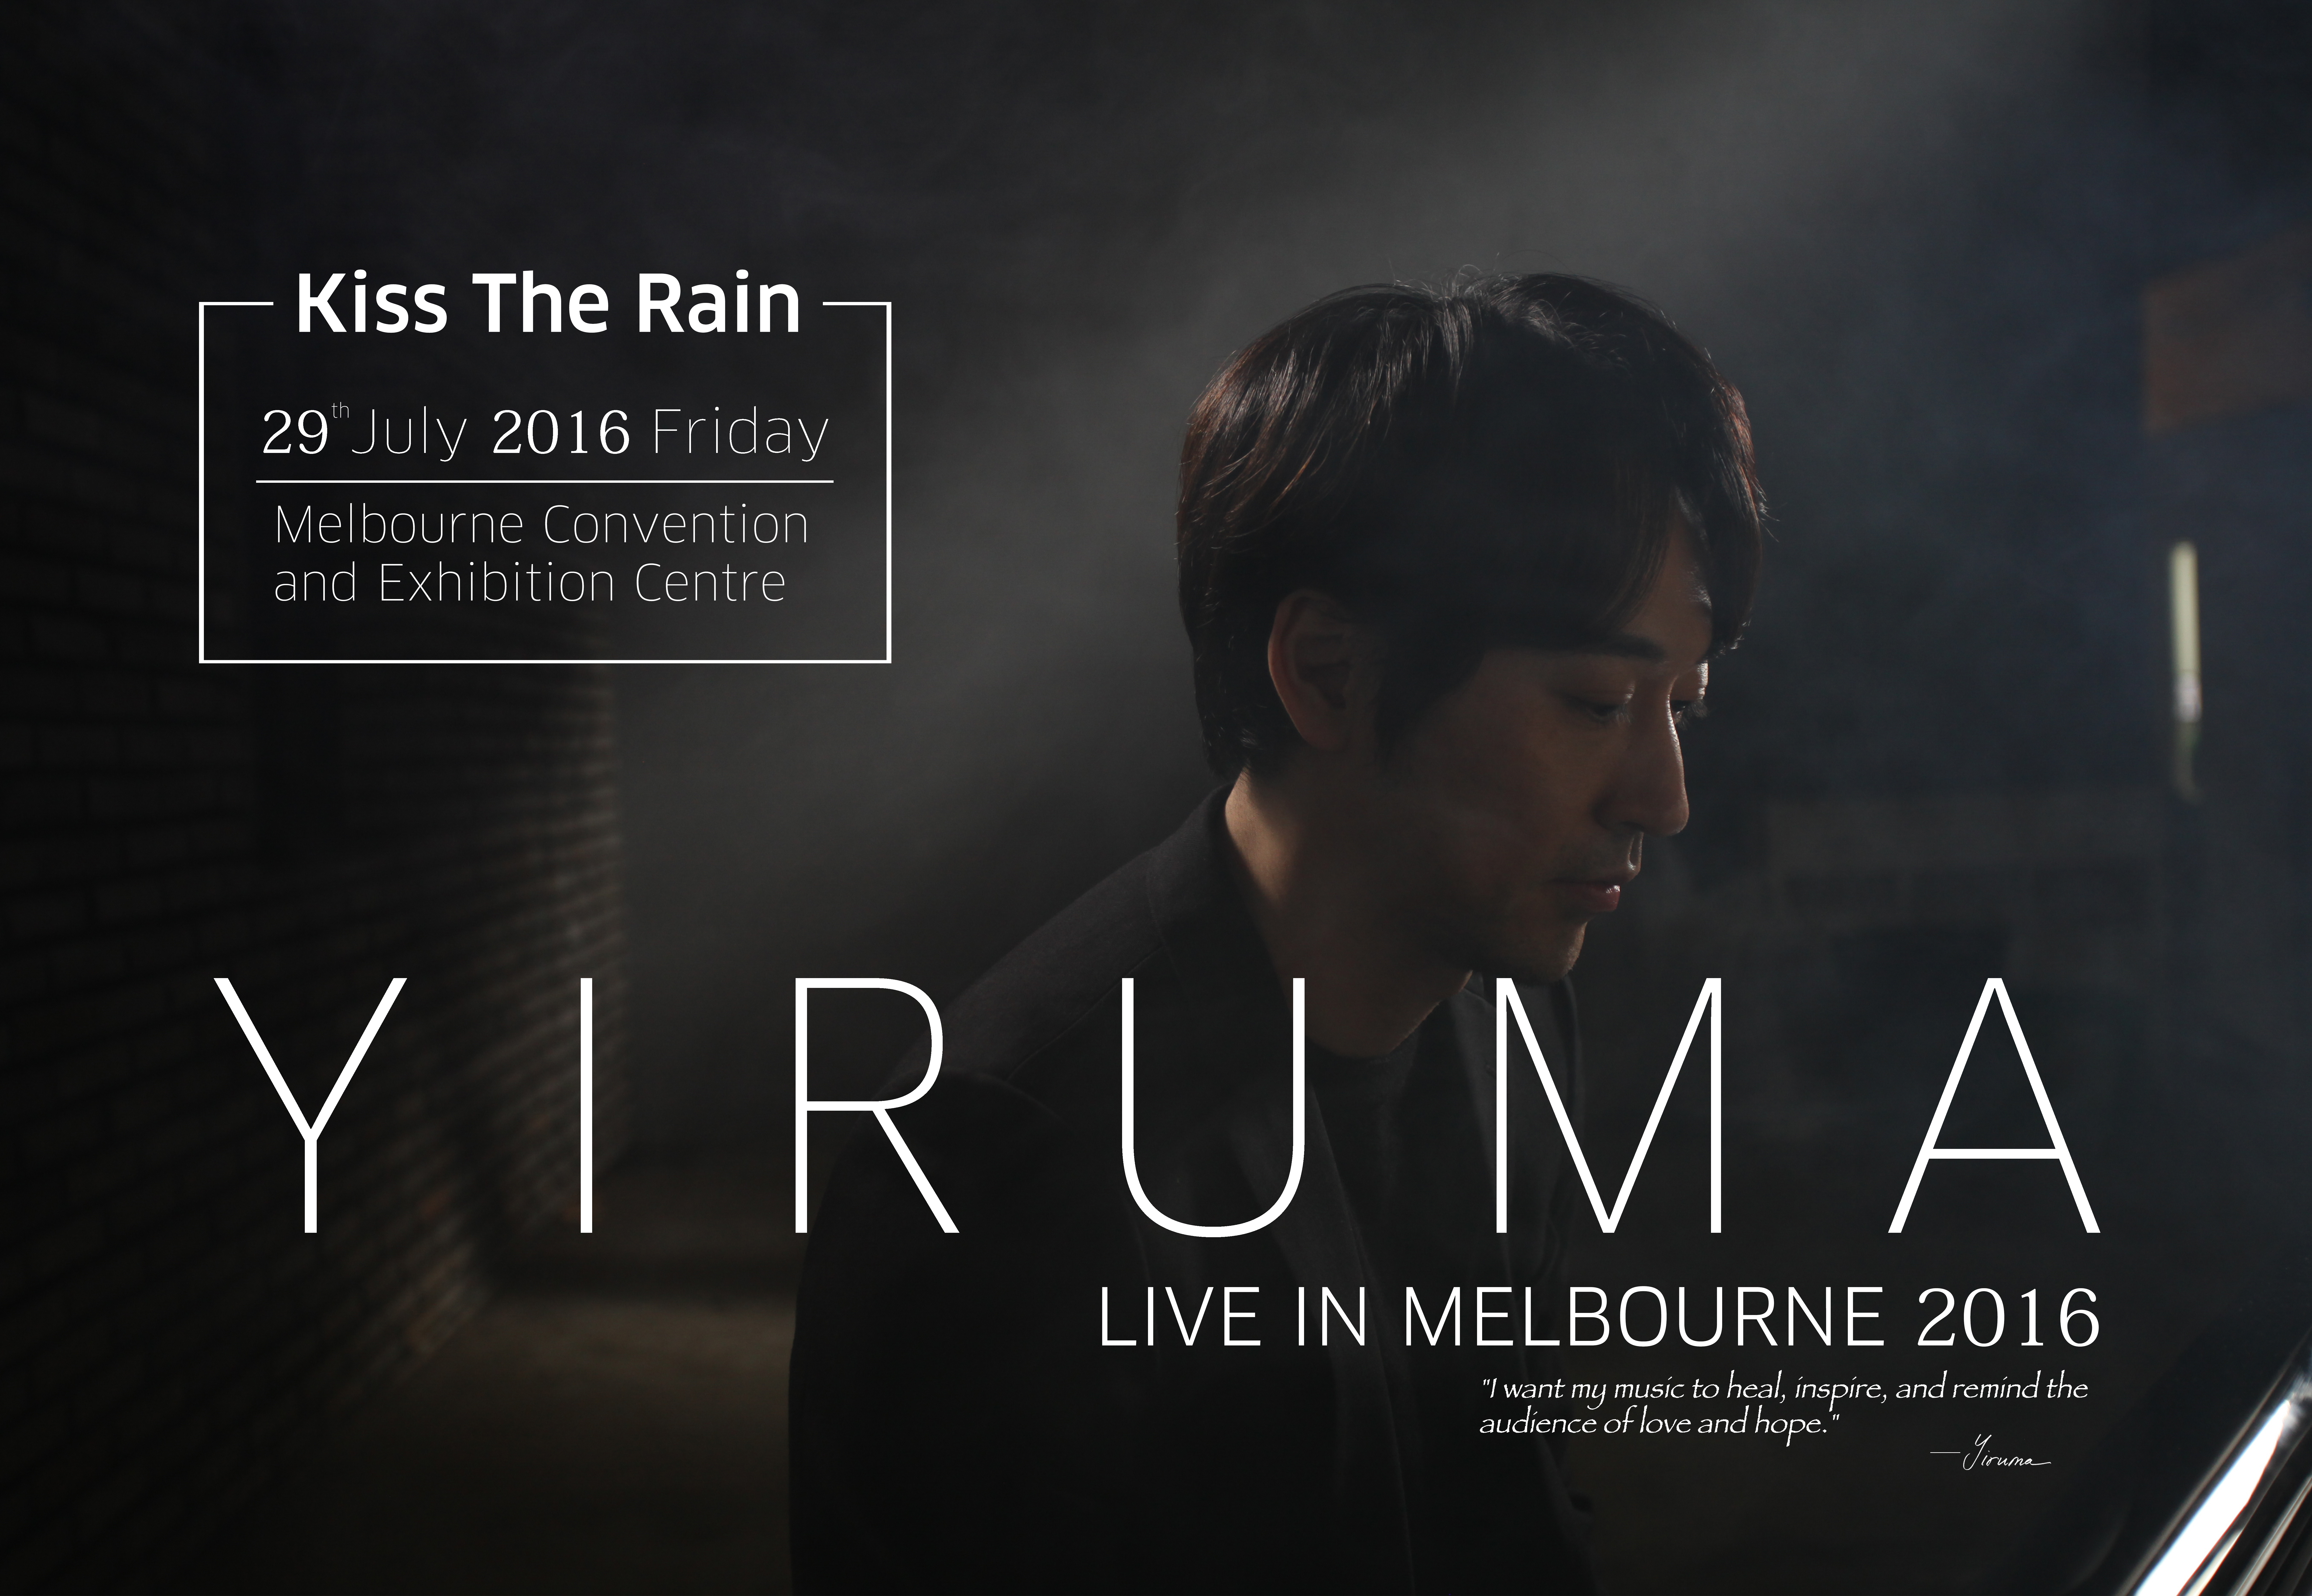 Kiss the Rain: Yiruma Live